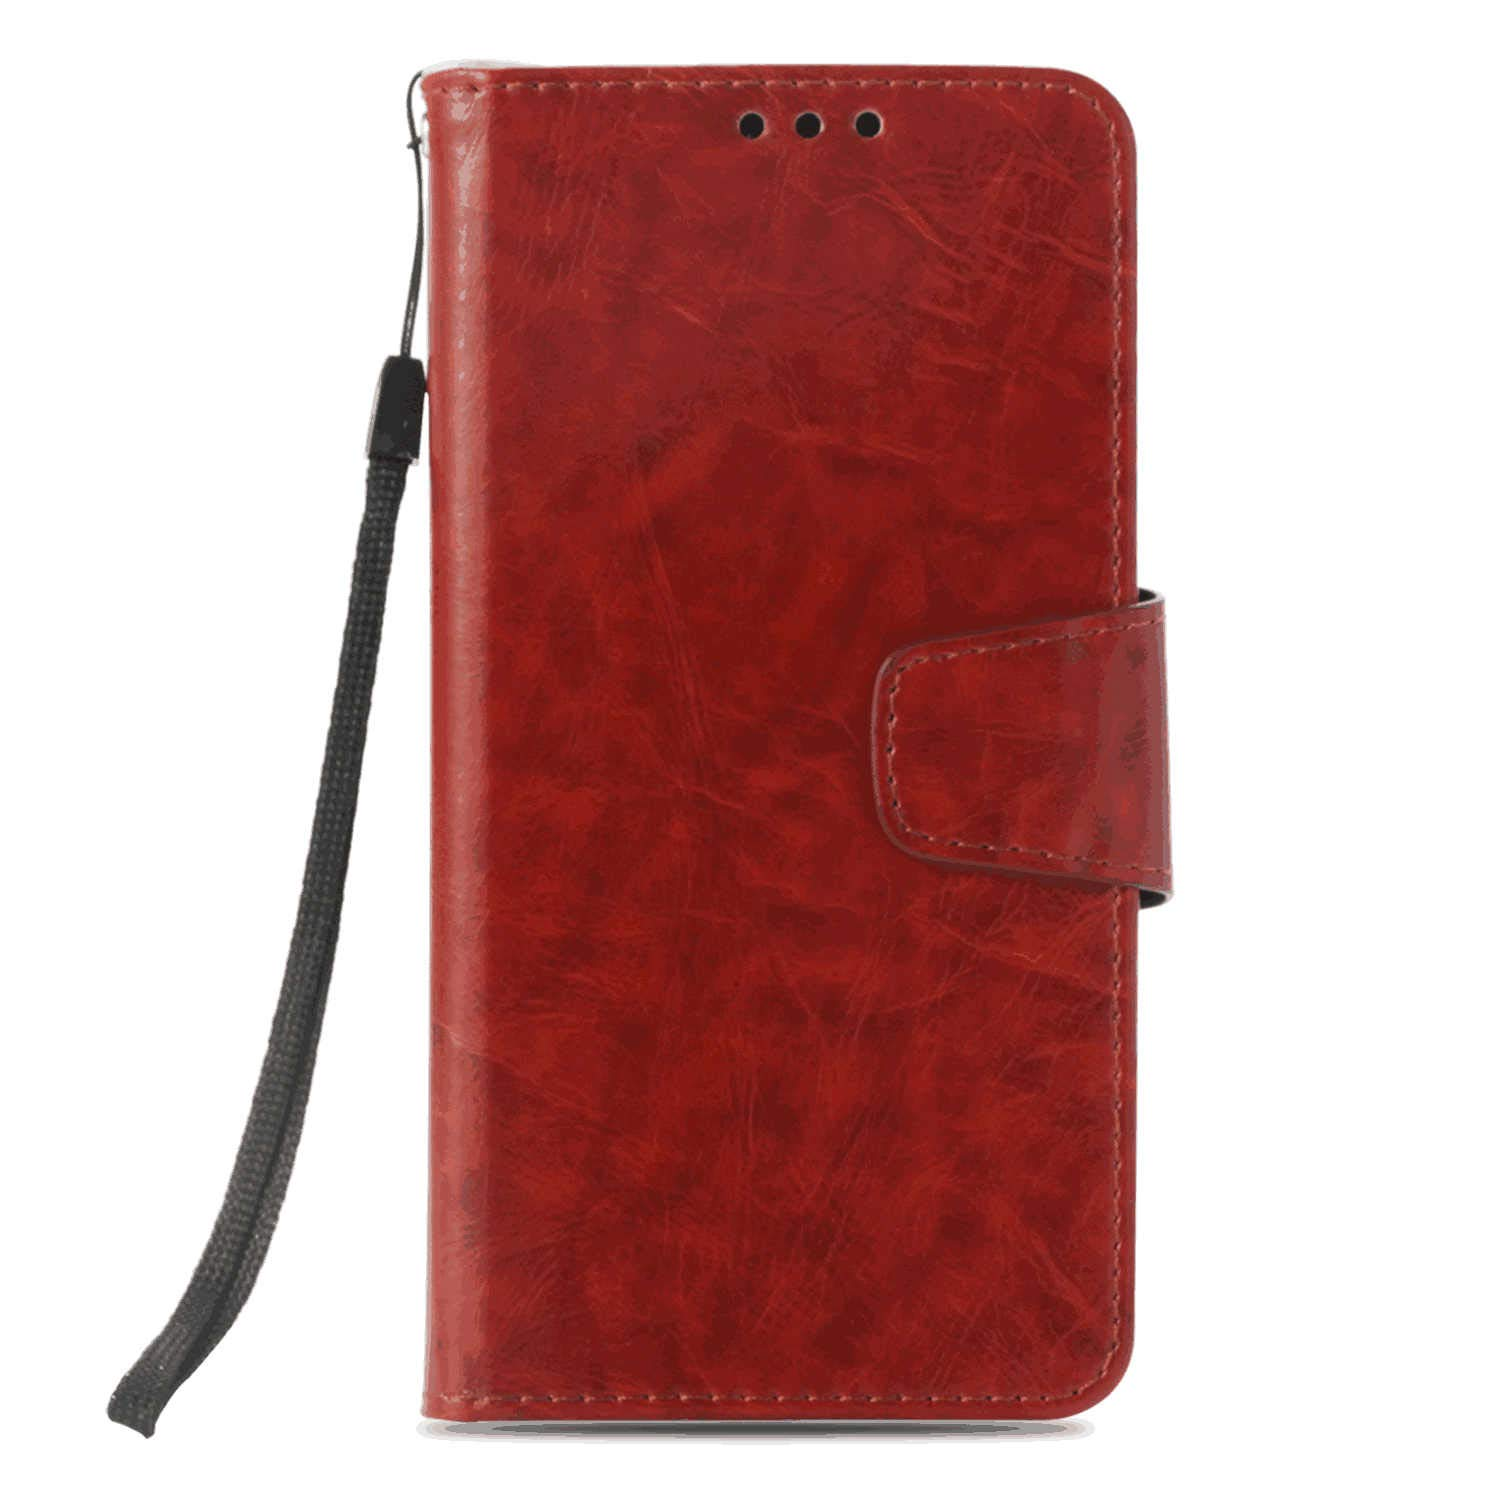 Business-Design Flip Cover for iPhone 8 PU Leather Case Compatible with iPhone 8 Cell Phone